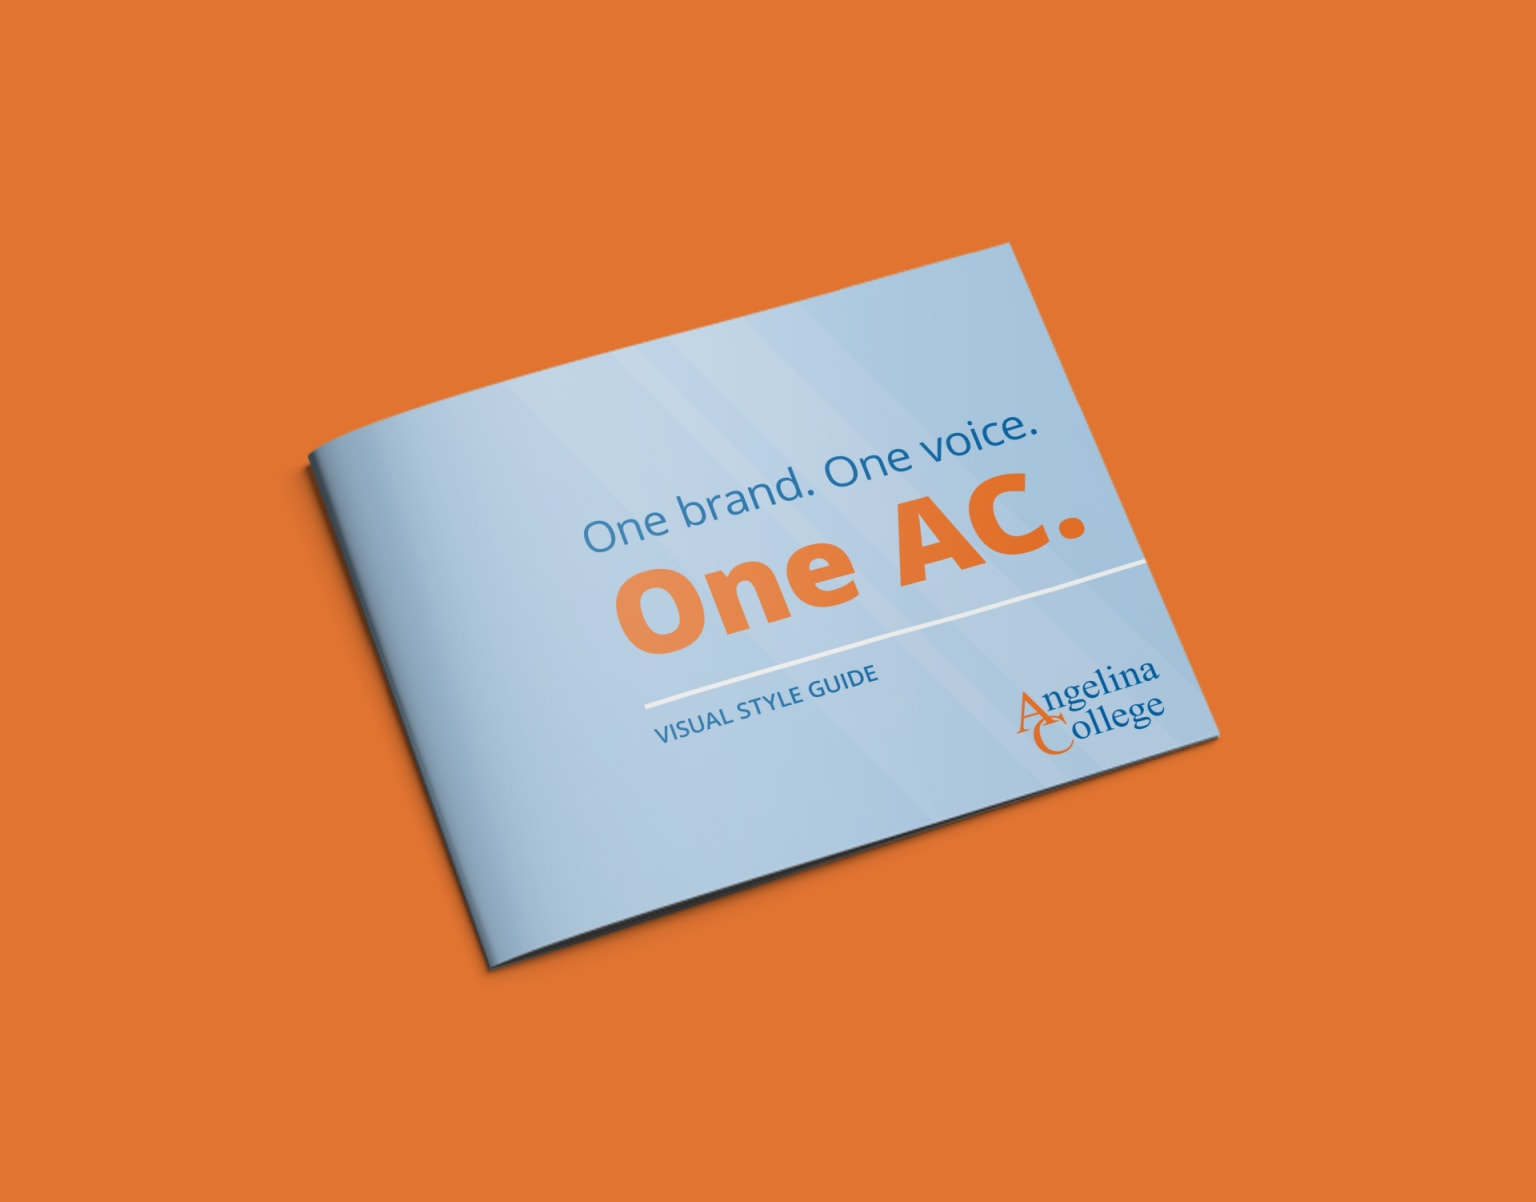 Angelina College Brand Guide